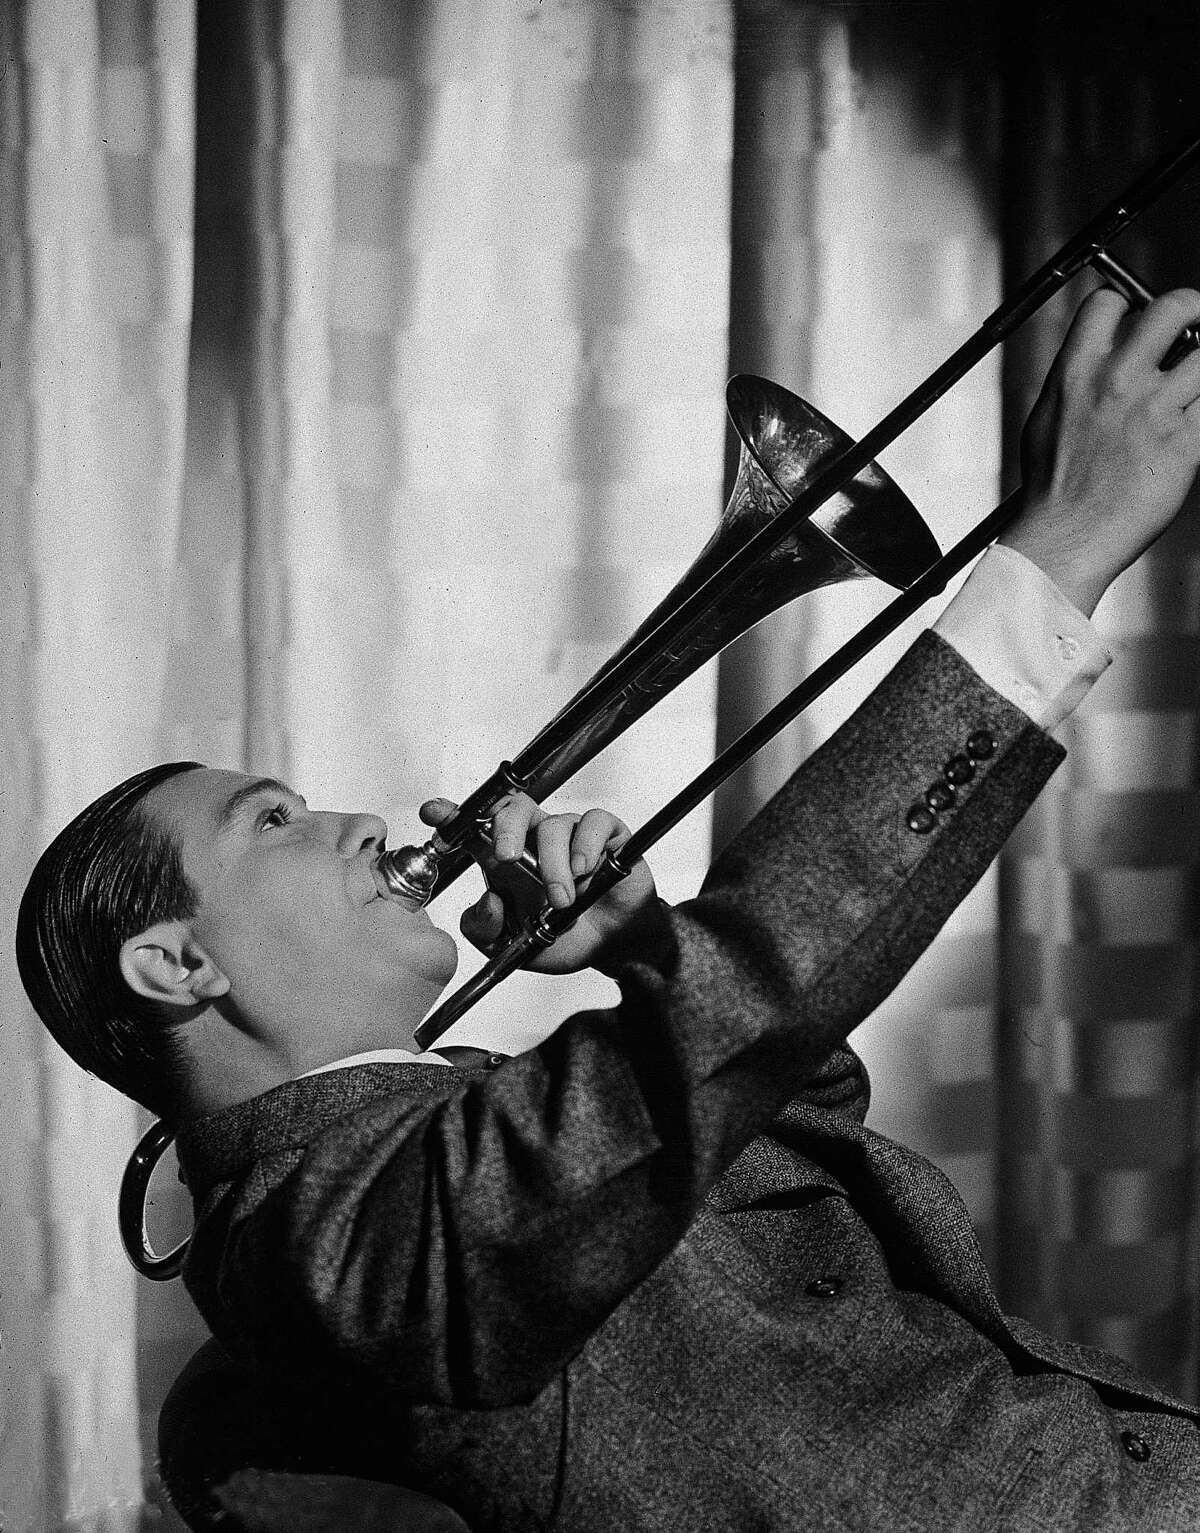 Jack Teagarden, pictured in a promotional film portrait